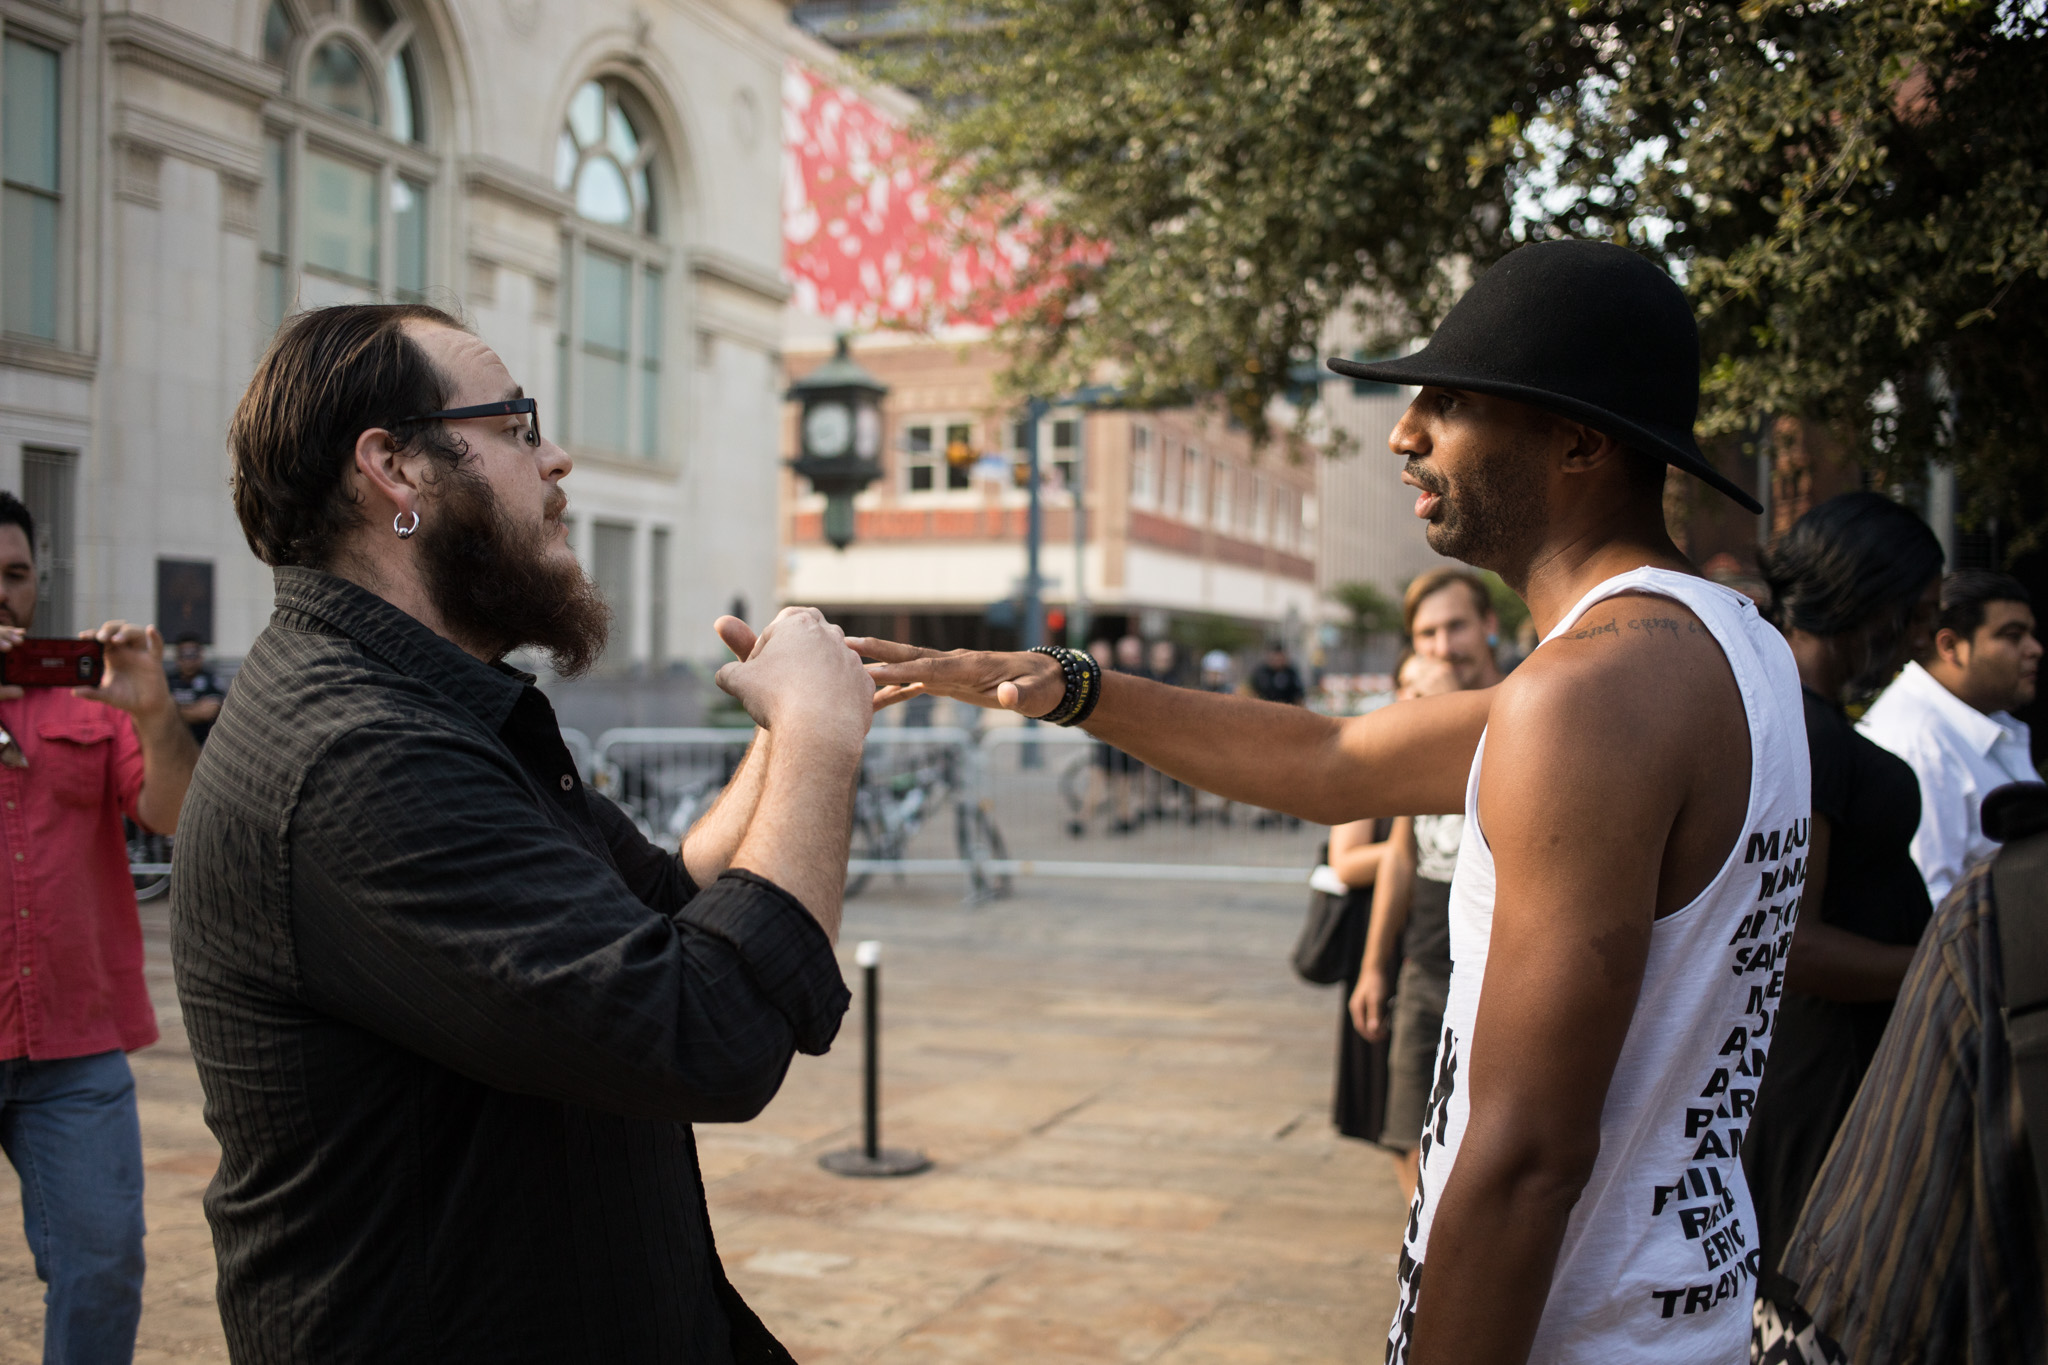 (From left) Paul Gescheidle and Activist Mike Lowe exchange heated words before entering citizens to be heard at Council Chambers regarding the removal of the Confederate monument in Travis Park.